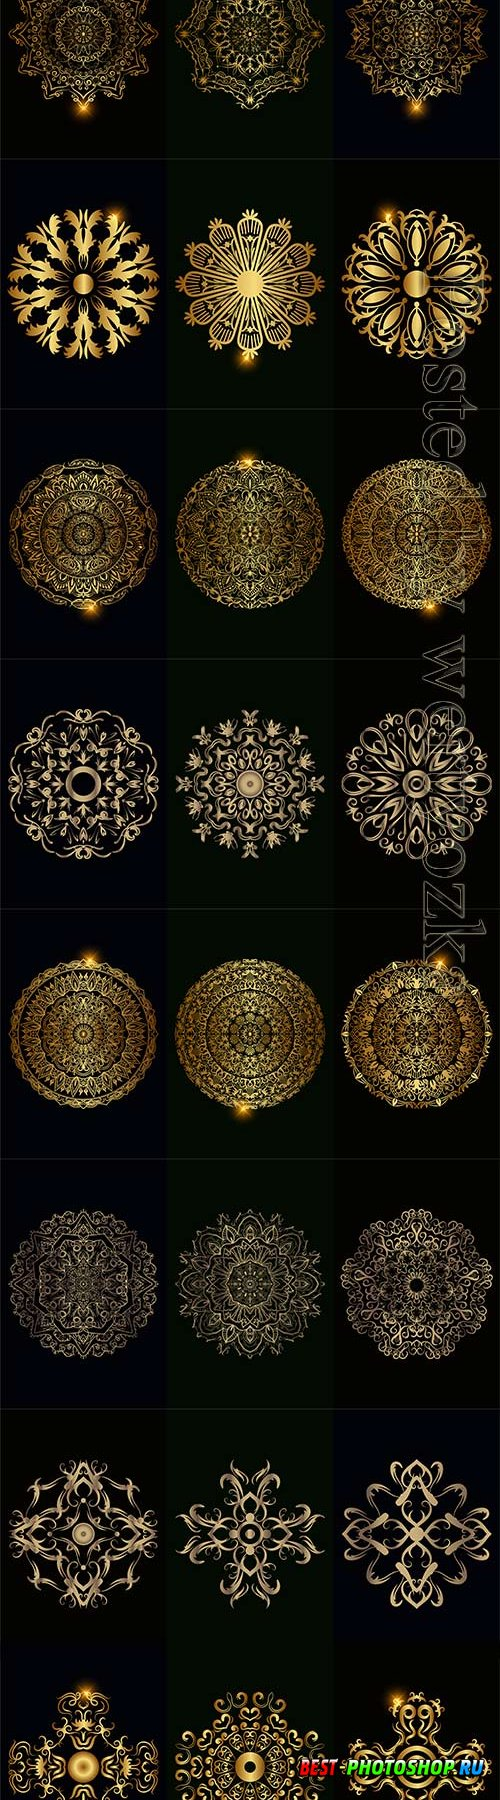 Collection of mandala ornament or flower vector